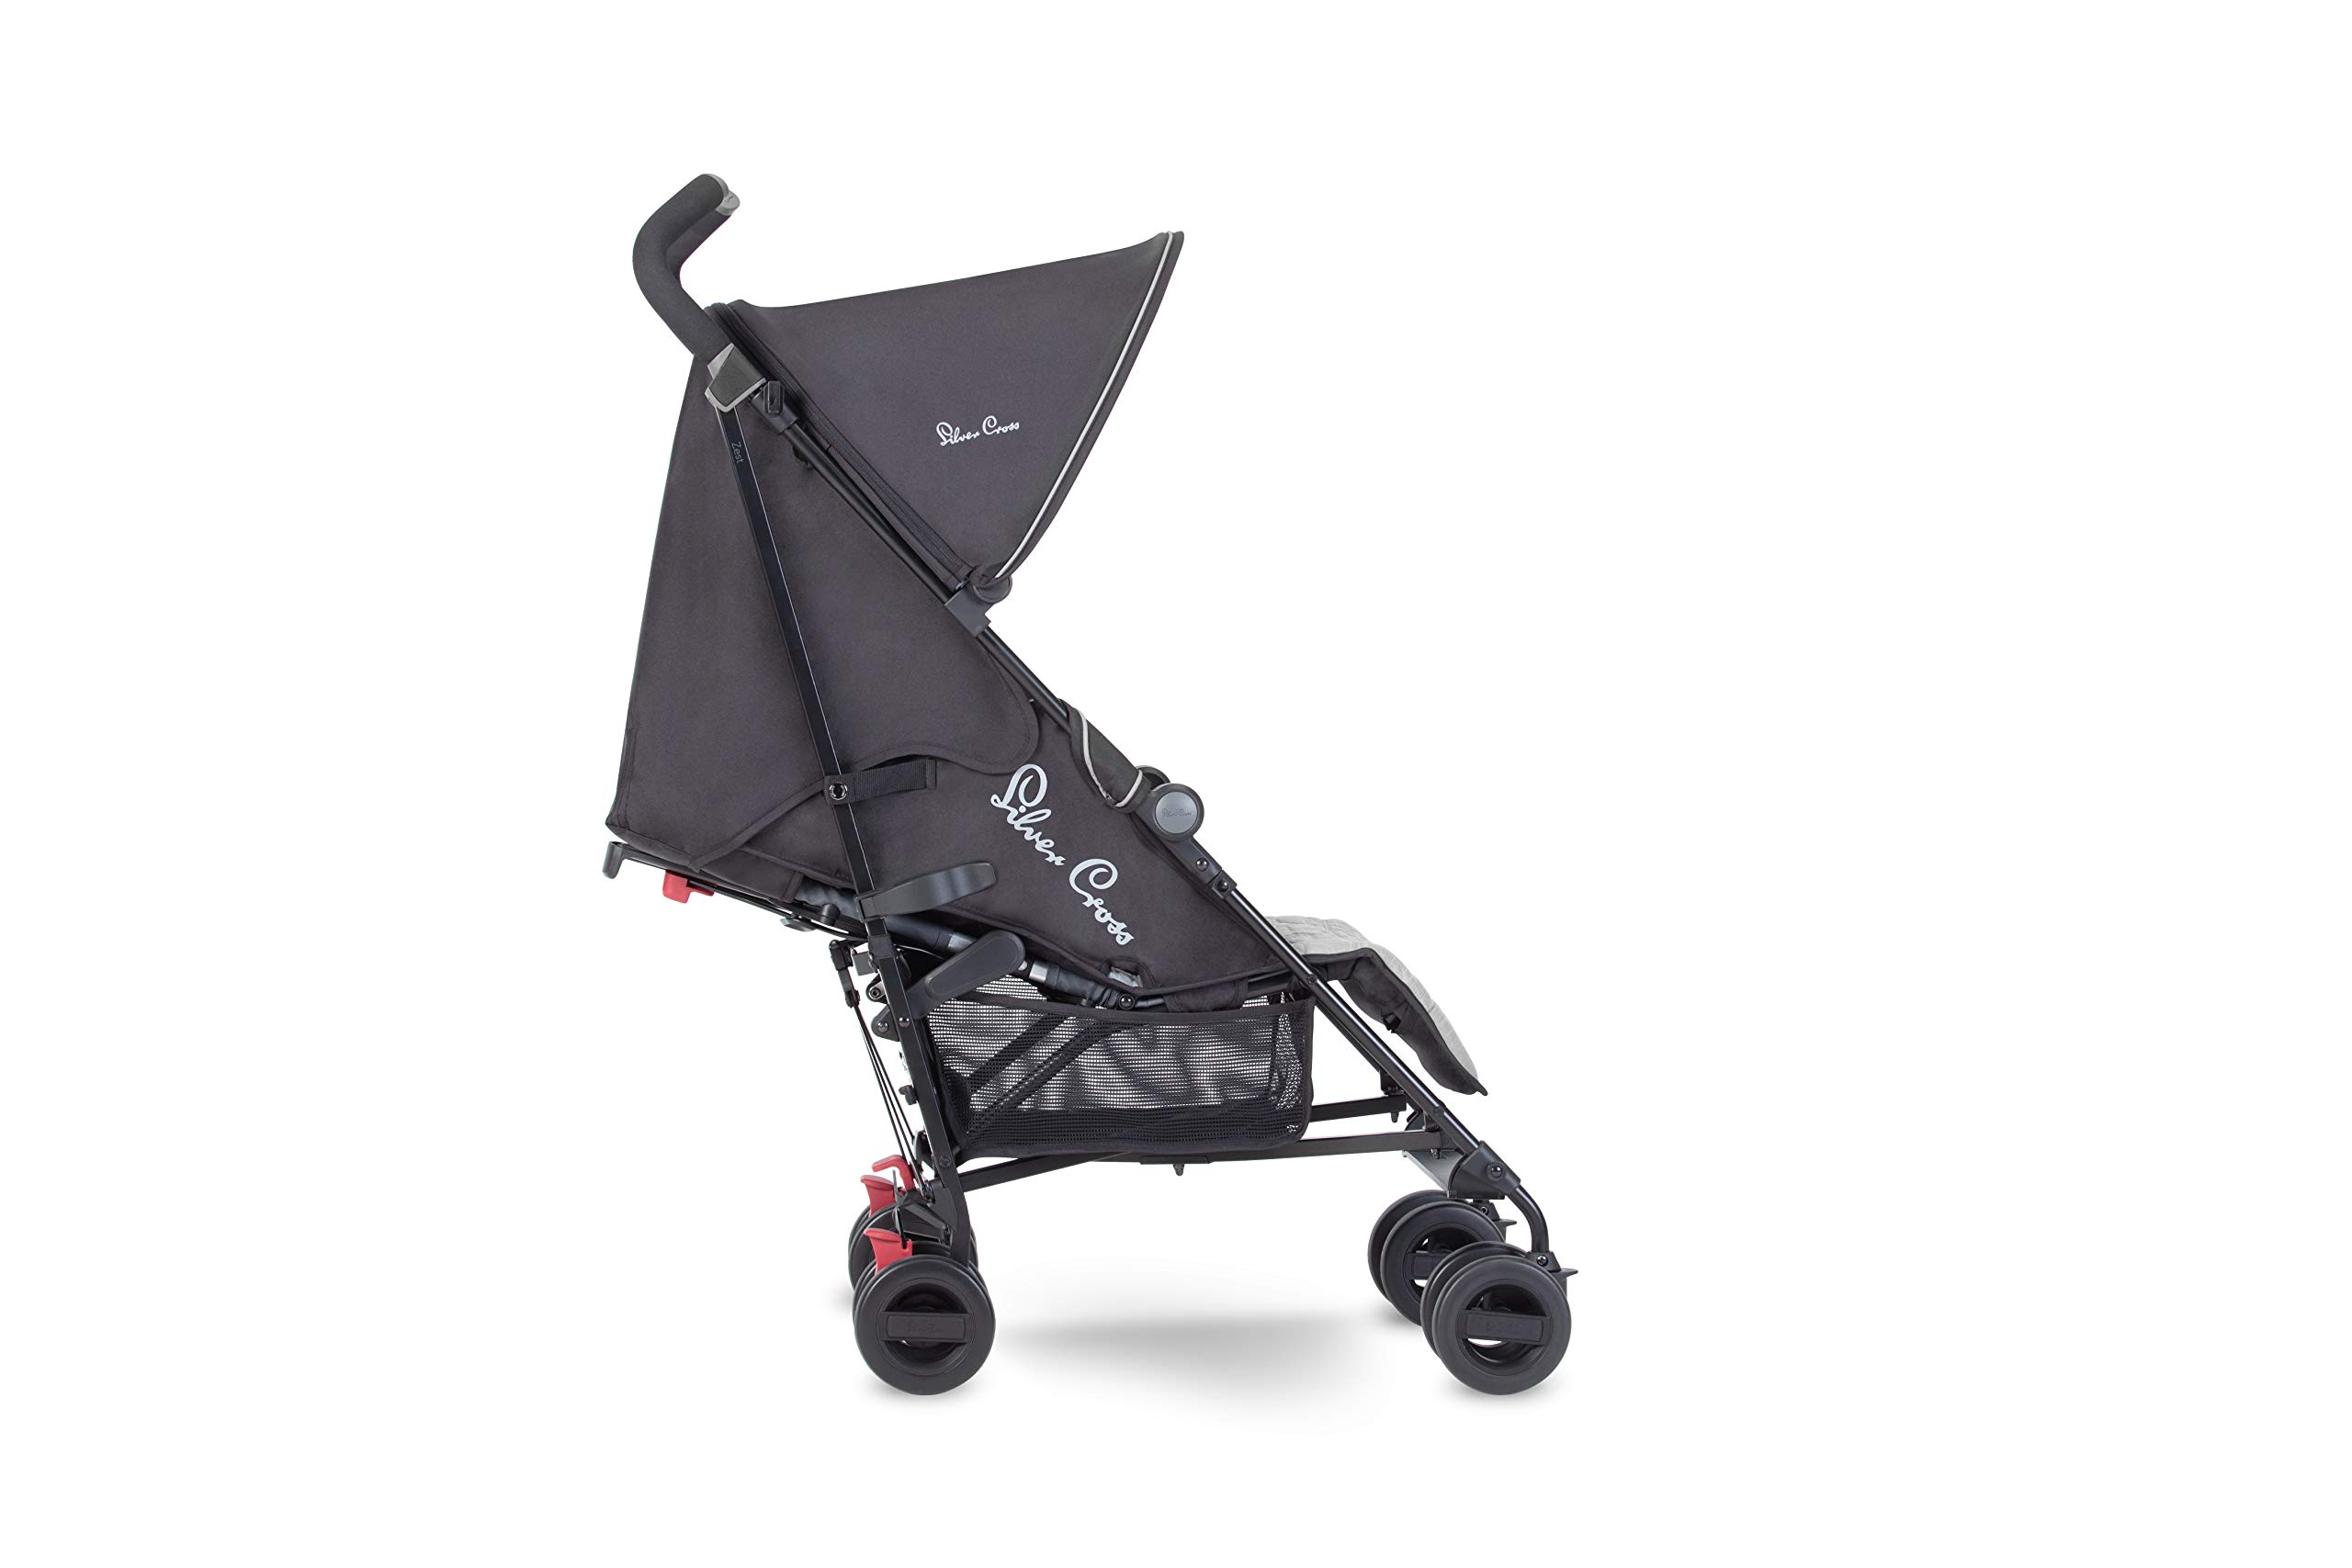 Silver Cross Zest Silver Silver Cross Ultra lightweight zest pushchair, weighing in at only 5.8kg, is suitable from birth up to 25kg It has a convenient one-hand fold, while the compact design makes it easy to store The fully lie-flat recline is best in its class 2